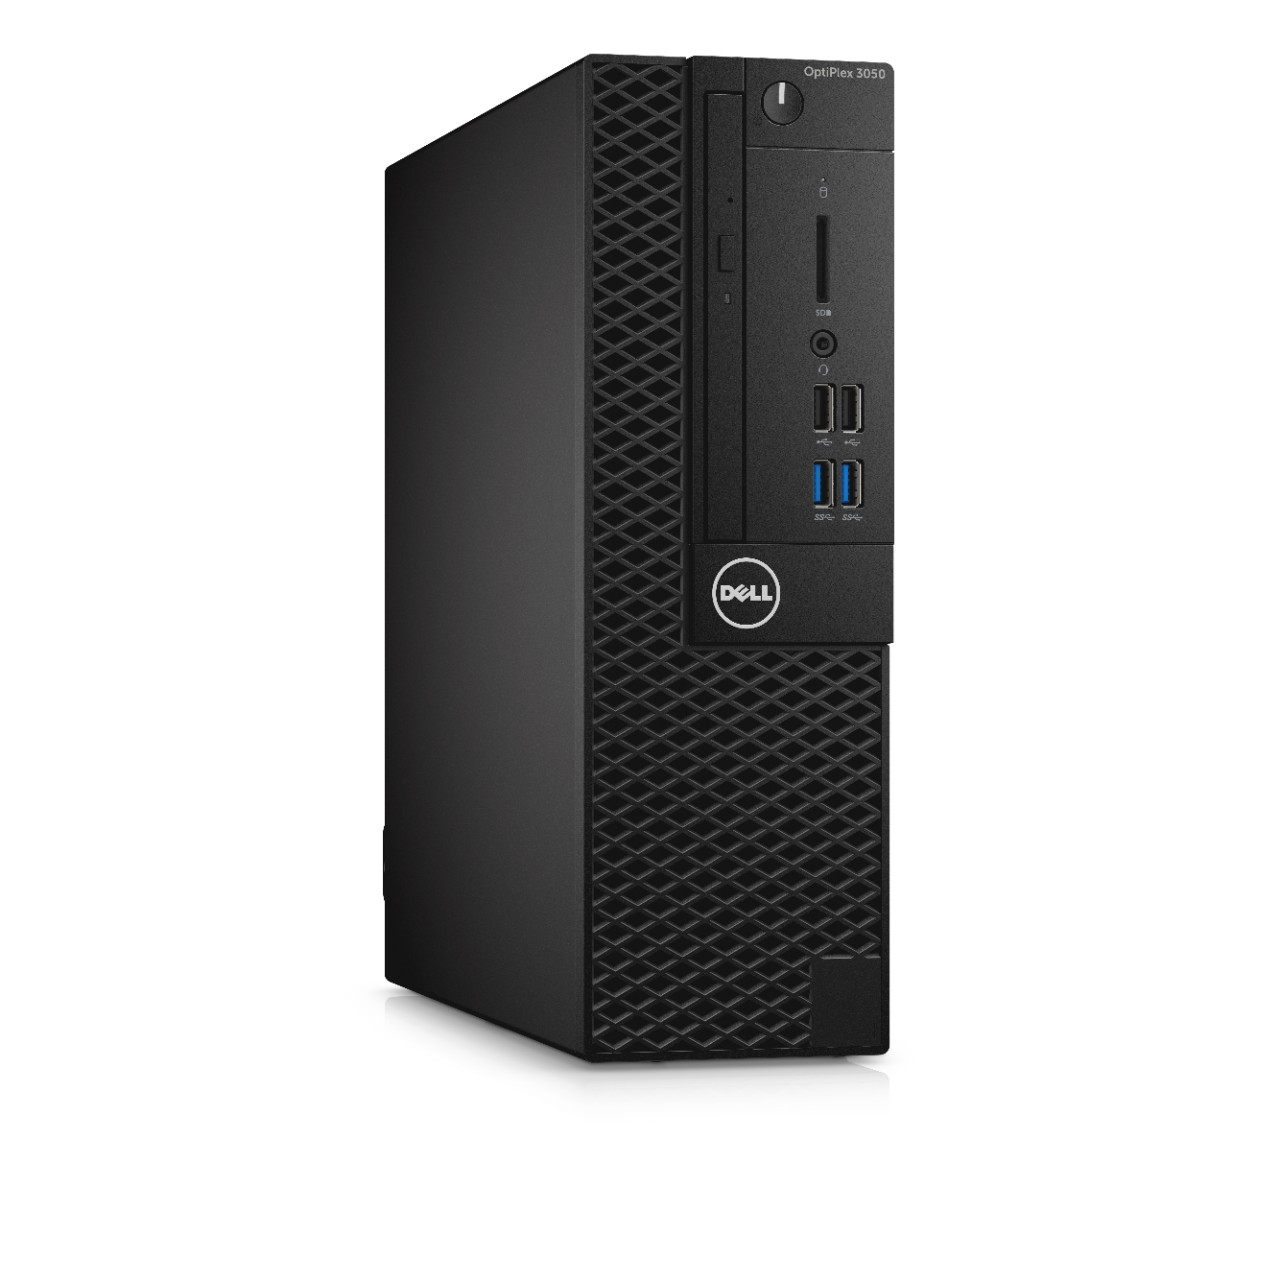 Dell PC Optiplex 3050 SF i5-6500/8G/256GB SSD/DP/HDMI/DVD RW/W7P(W10P)/3RNBD/Černý